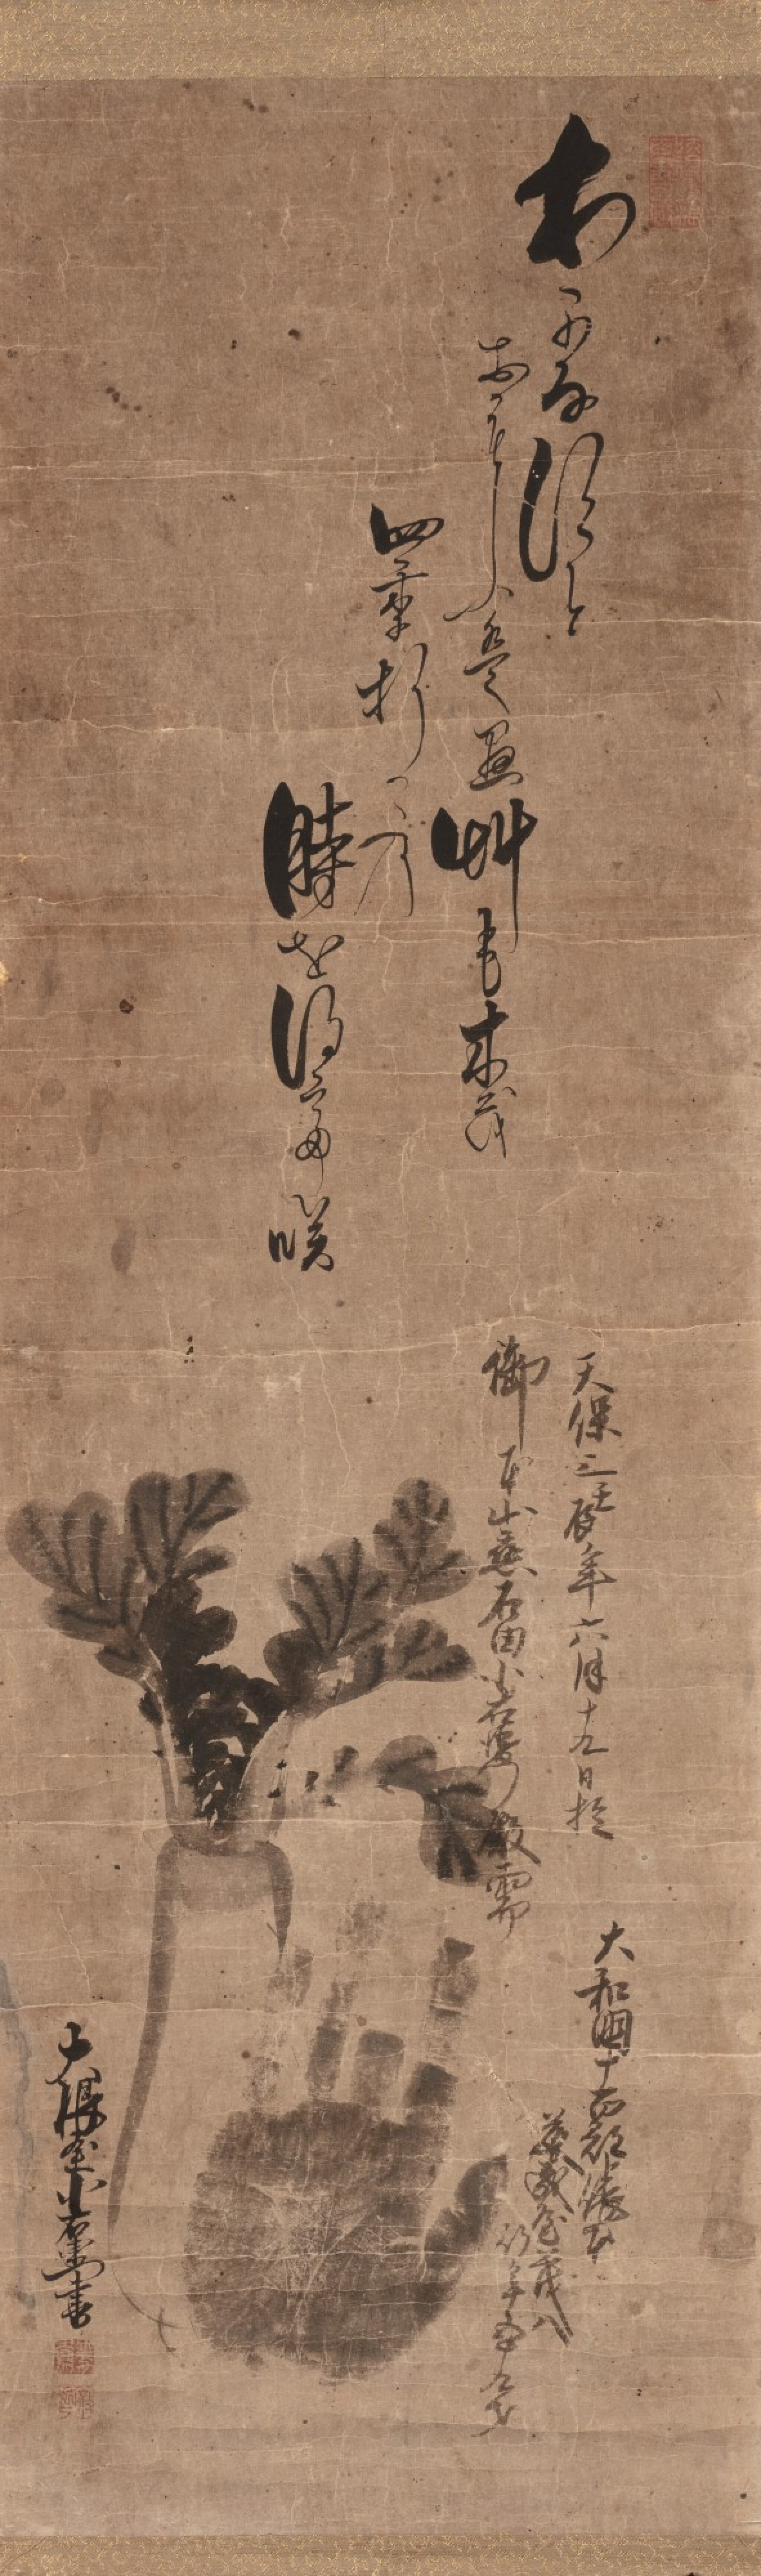 View full screen - View 1 of Lot 293. Radish and handprint, Japan, dated 1832.